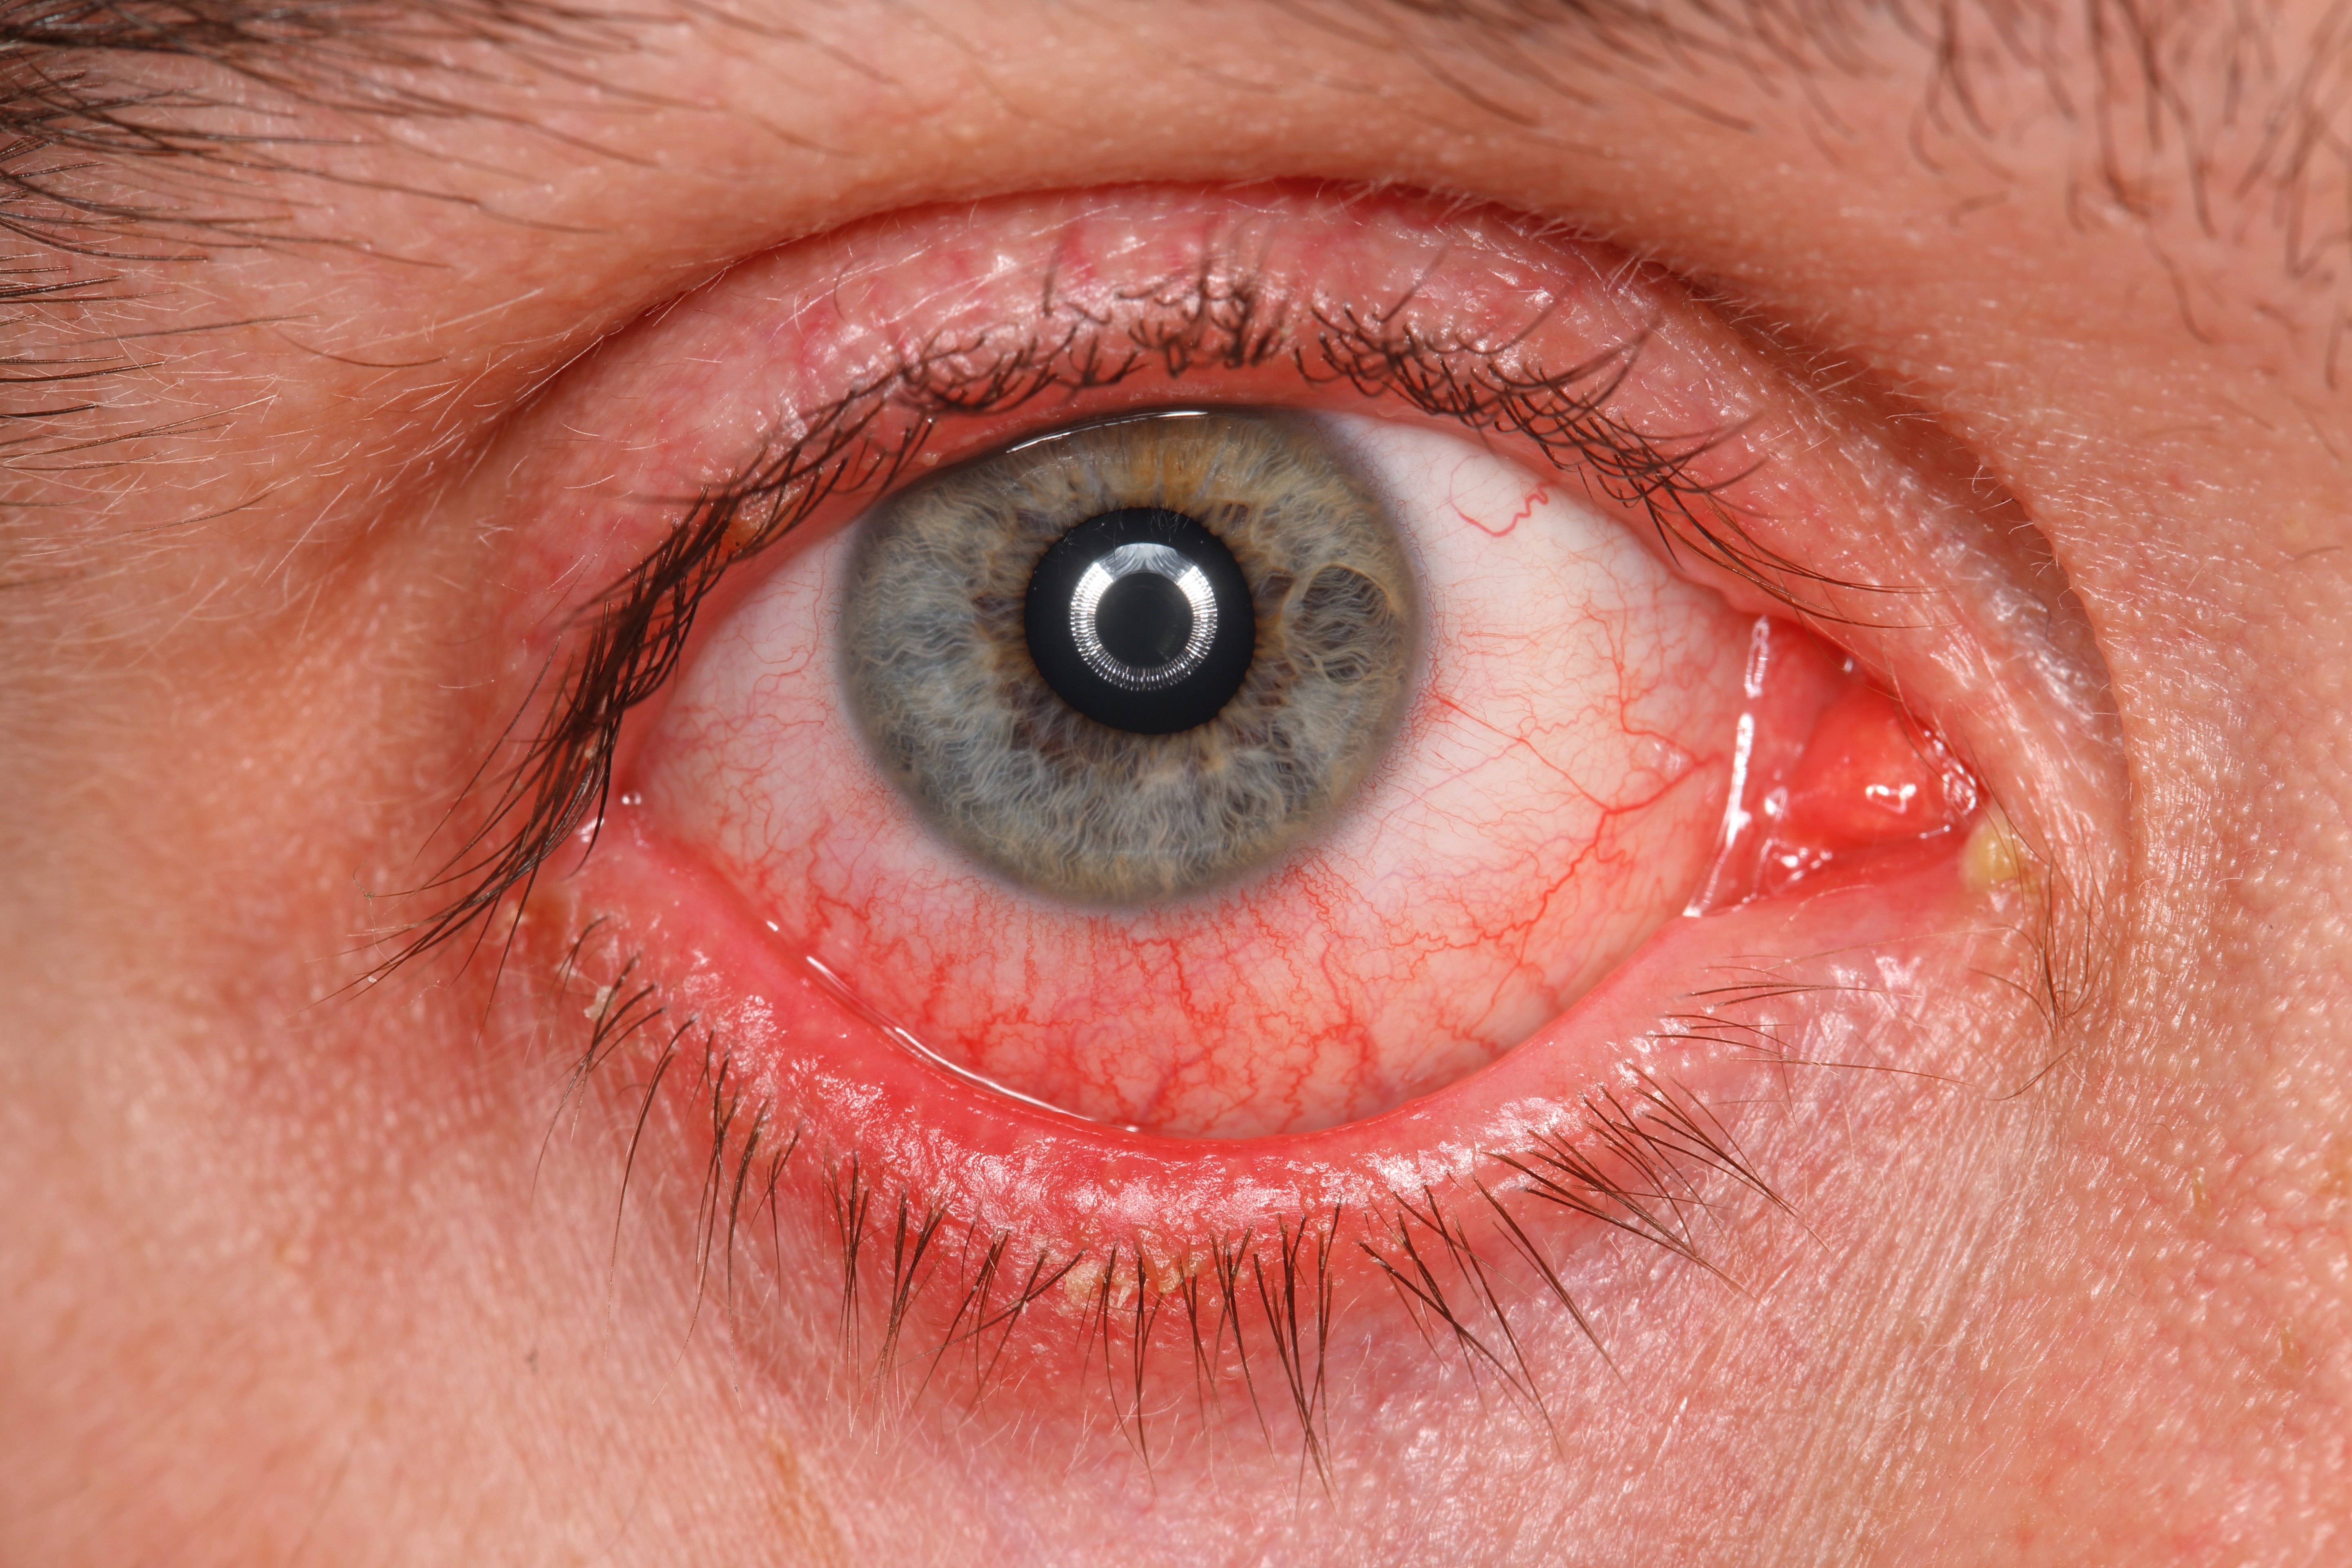 How to treat conjunctivitis without risk to health 1